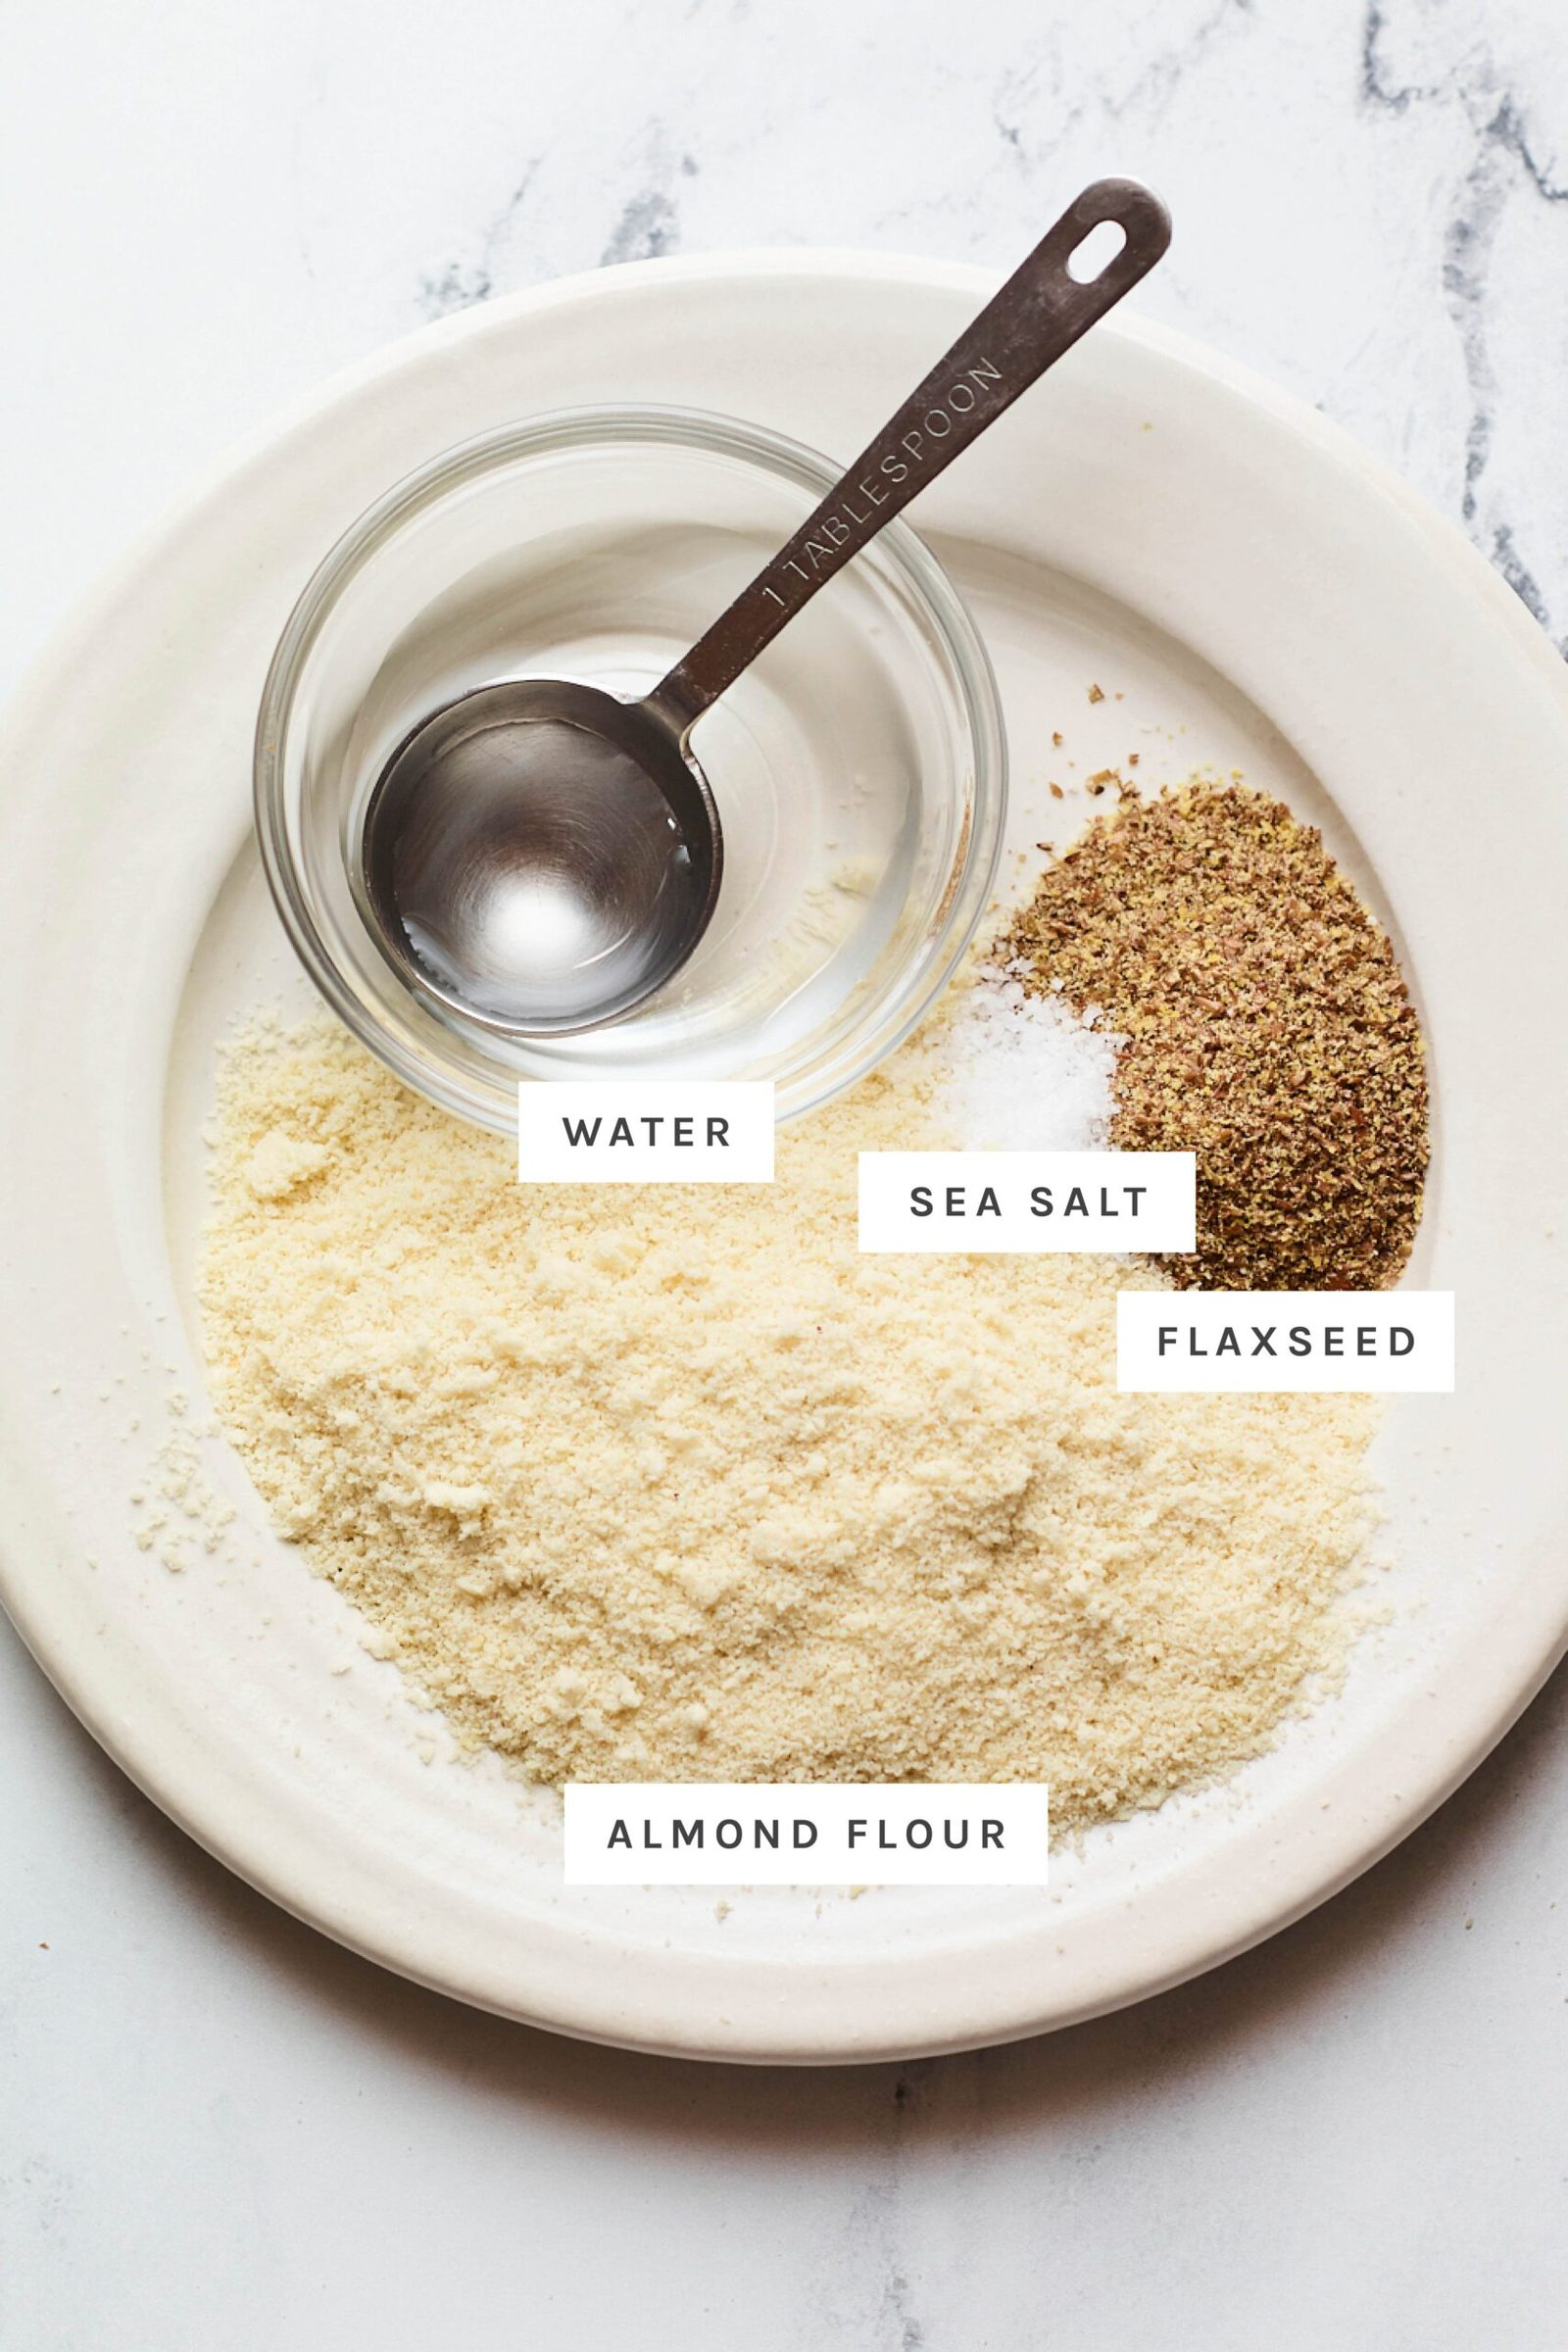 Water, flaxseed, salt and almond flour measured out on a plate.